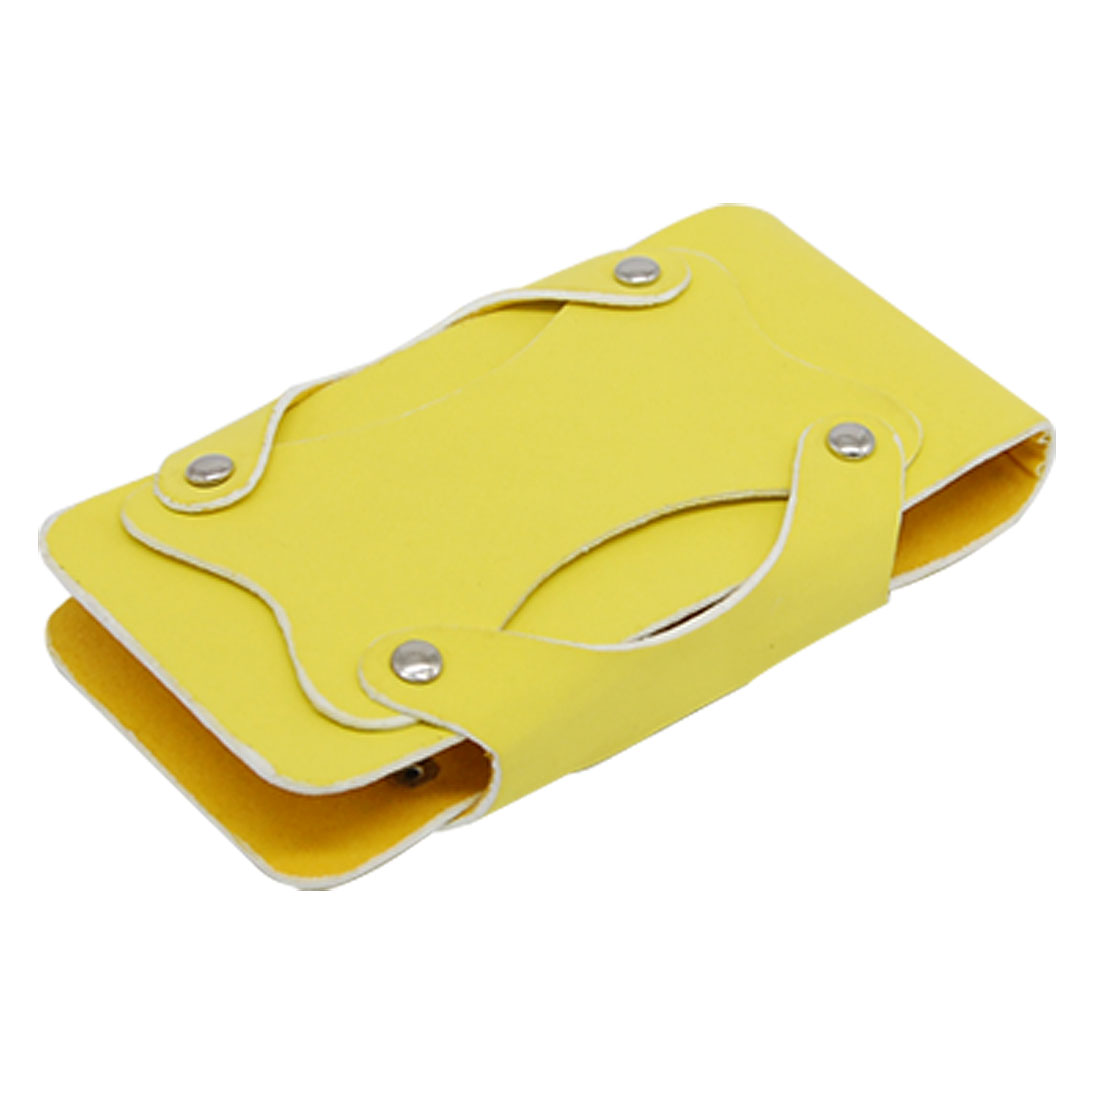 Yellow Leather Sleeve Case Pouch Protector for Apple iPhone 3G